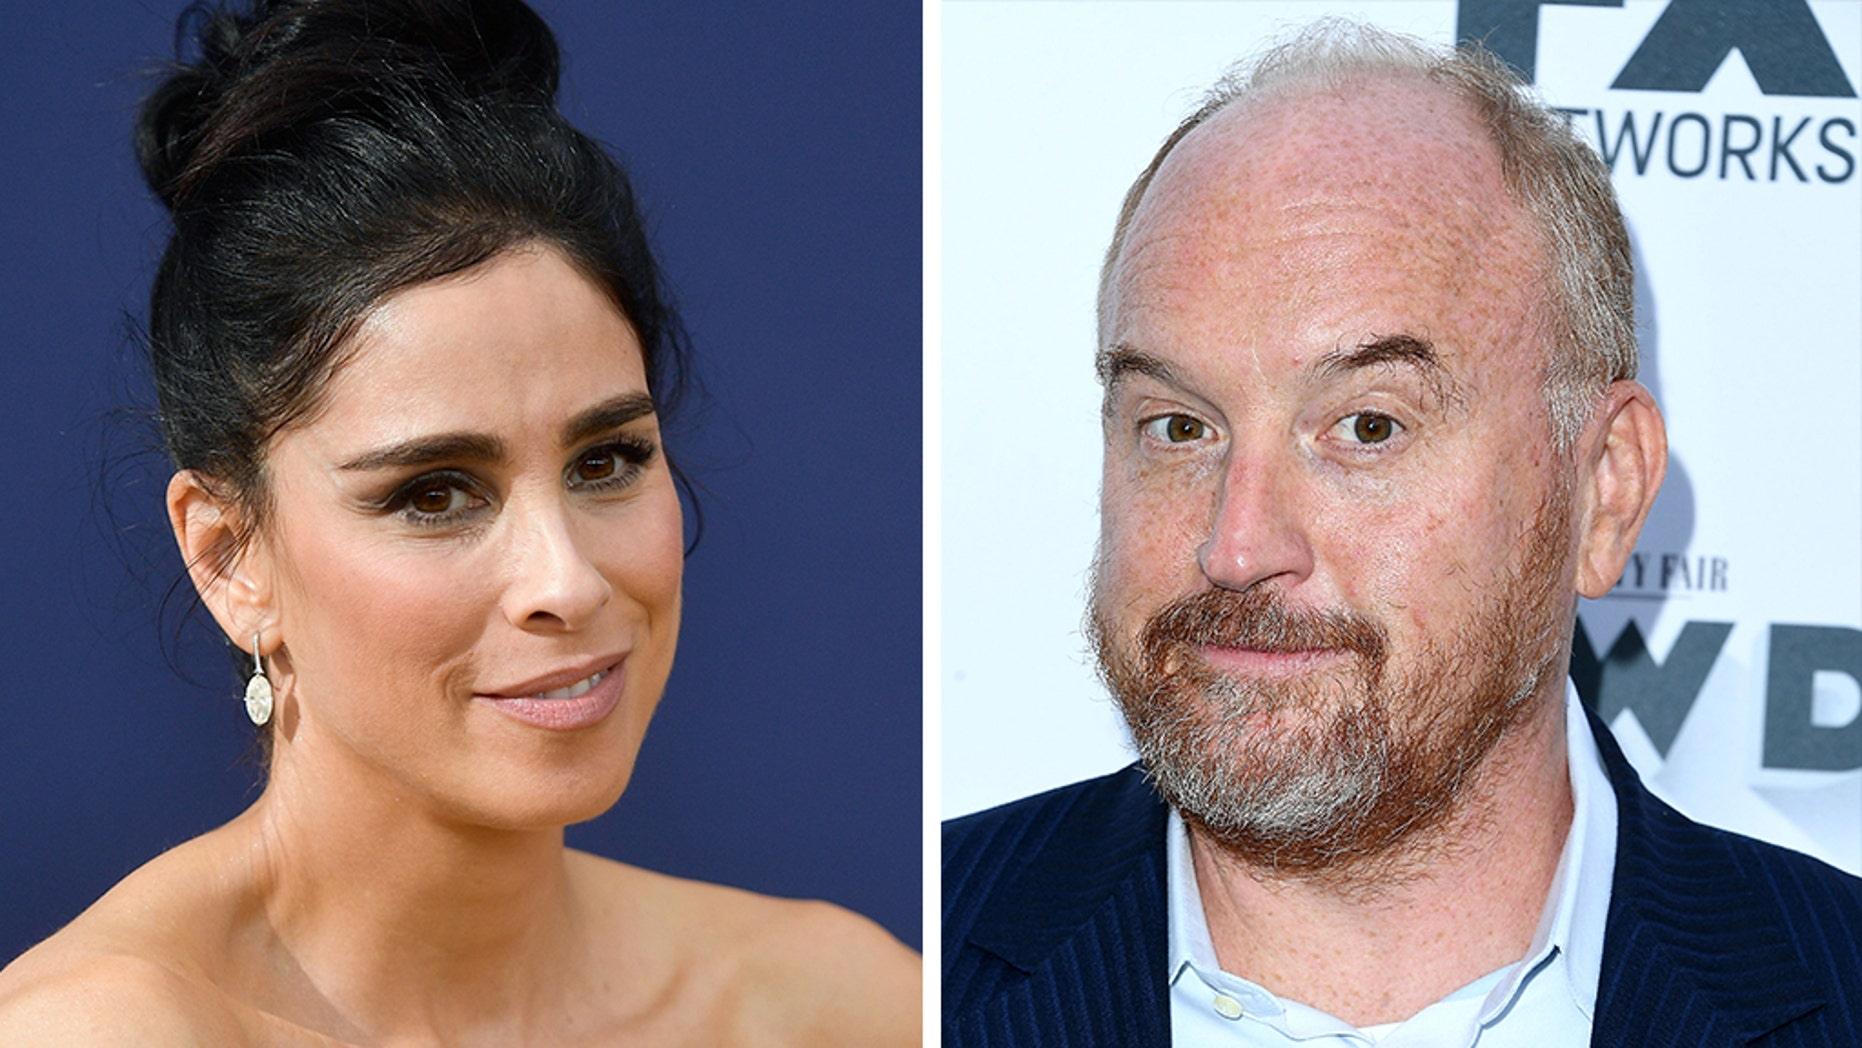 Sarah Silverman says comedian Louis C.K. used to masturbate in front of her with her consent in an interview with Howard Stern during his SiriusXM radio show on Monday.